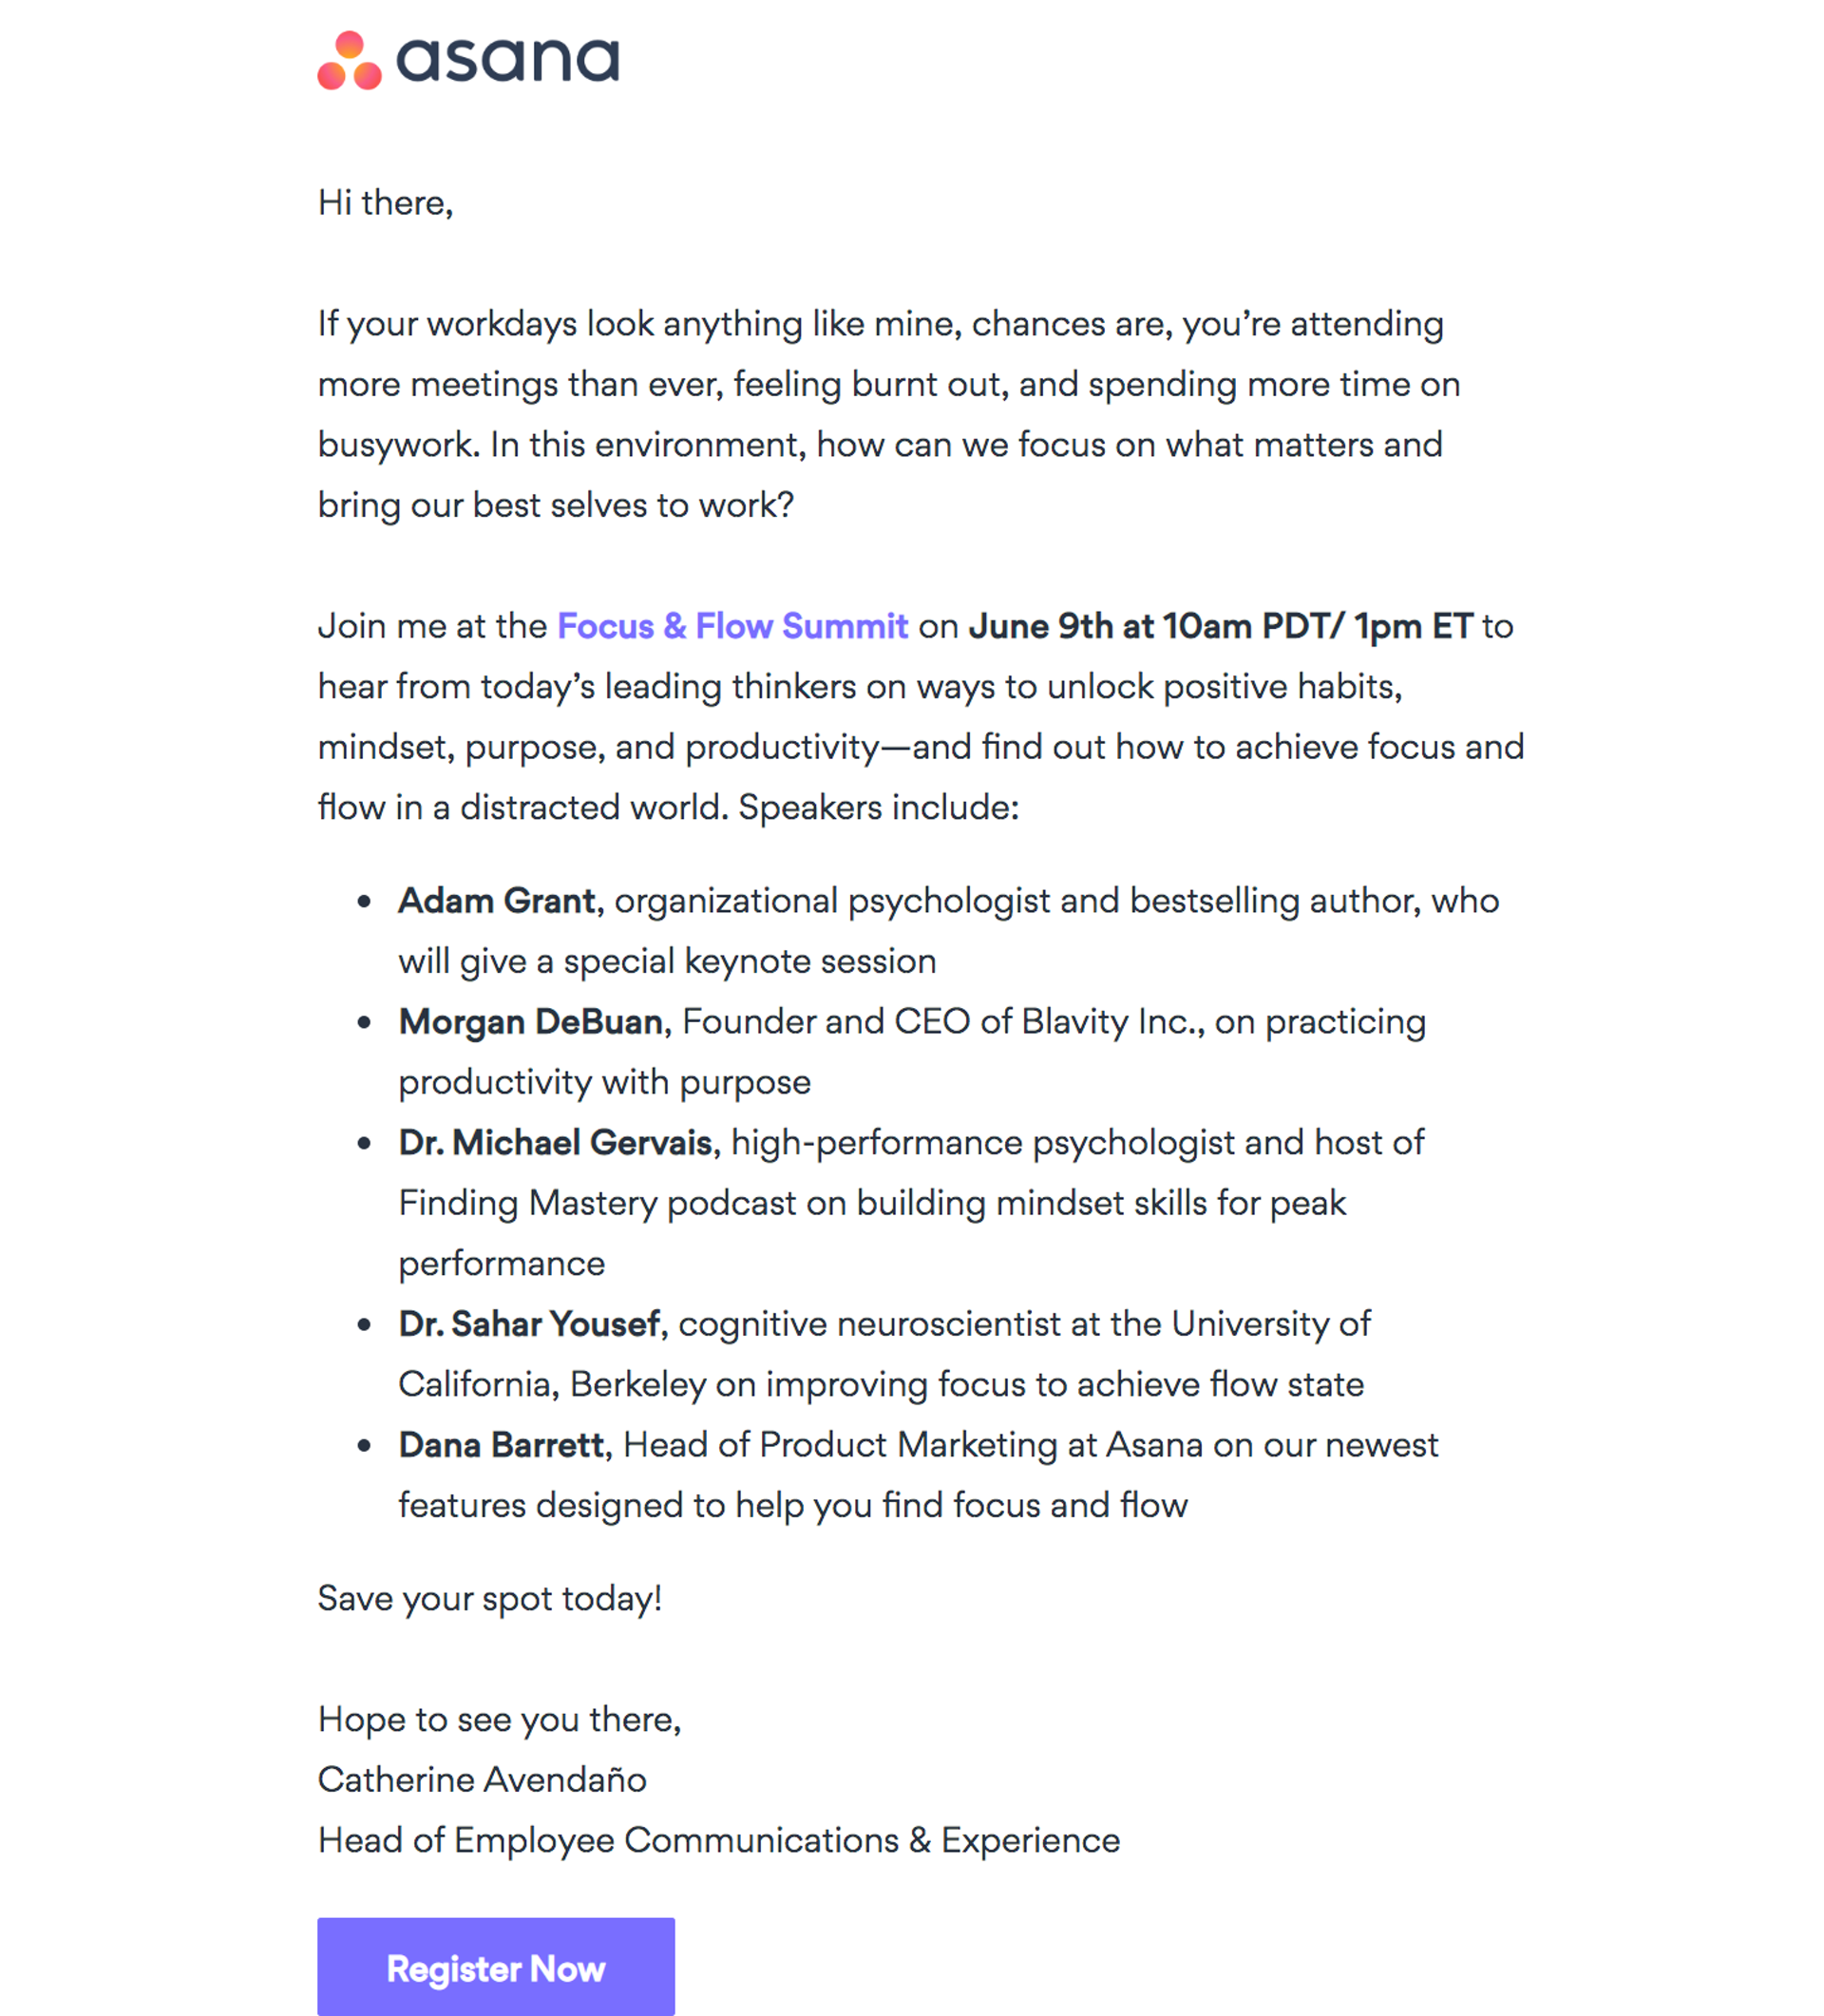 Webinar invitation example from Asana that focuses on well crafted copy that targets their audience.